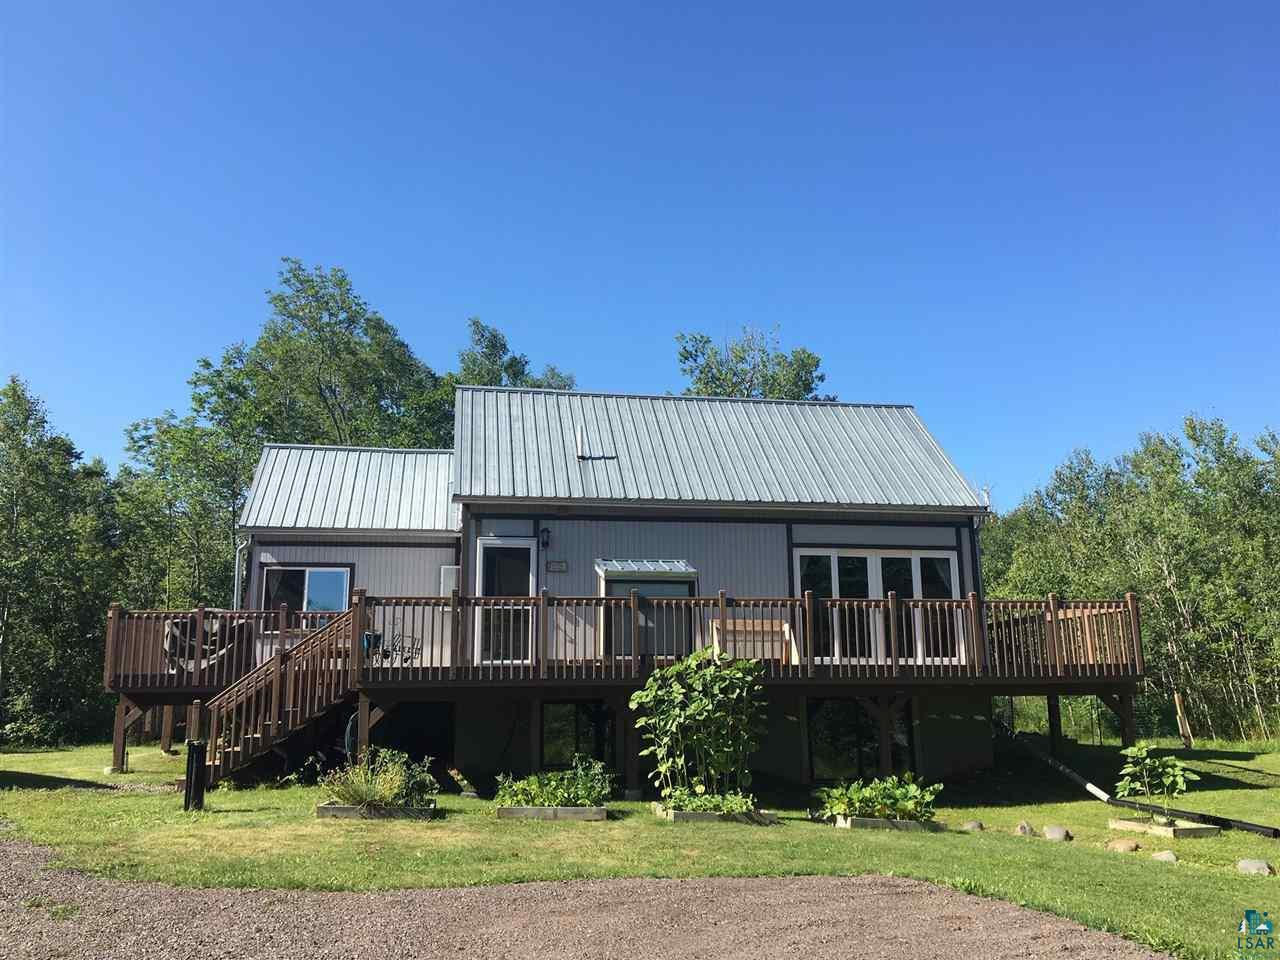 A very original house on 10 beautifully wooded acres, just a stone's throw from Lake Superior! This fun home has so much to offer with open and light living areas, two gas fireplaces and a full (800+ft) wrap around deck. It caters to excellent year 'round or vacation living. Fiber-optic internet makes this a wonderful get-away and work-away option. The living room has vaulted ceilings, two deck doors, lots of light and good flow. There is a large loft to play, work, or add sleeping area. The lower level was newly finished with two bedrooms and a full bath. Utility room and laundry are in the lower level. The back yard is fenced in for safe kid and animal play. There are trails cut through the property, to walk and enjoy the beautiful northern seasons. 3.5 miles from Port Wing town, beach, and marina. 38 miles from both Superior and Bayfield. You are smack-dab in the middle of goodness here, come and see!